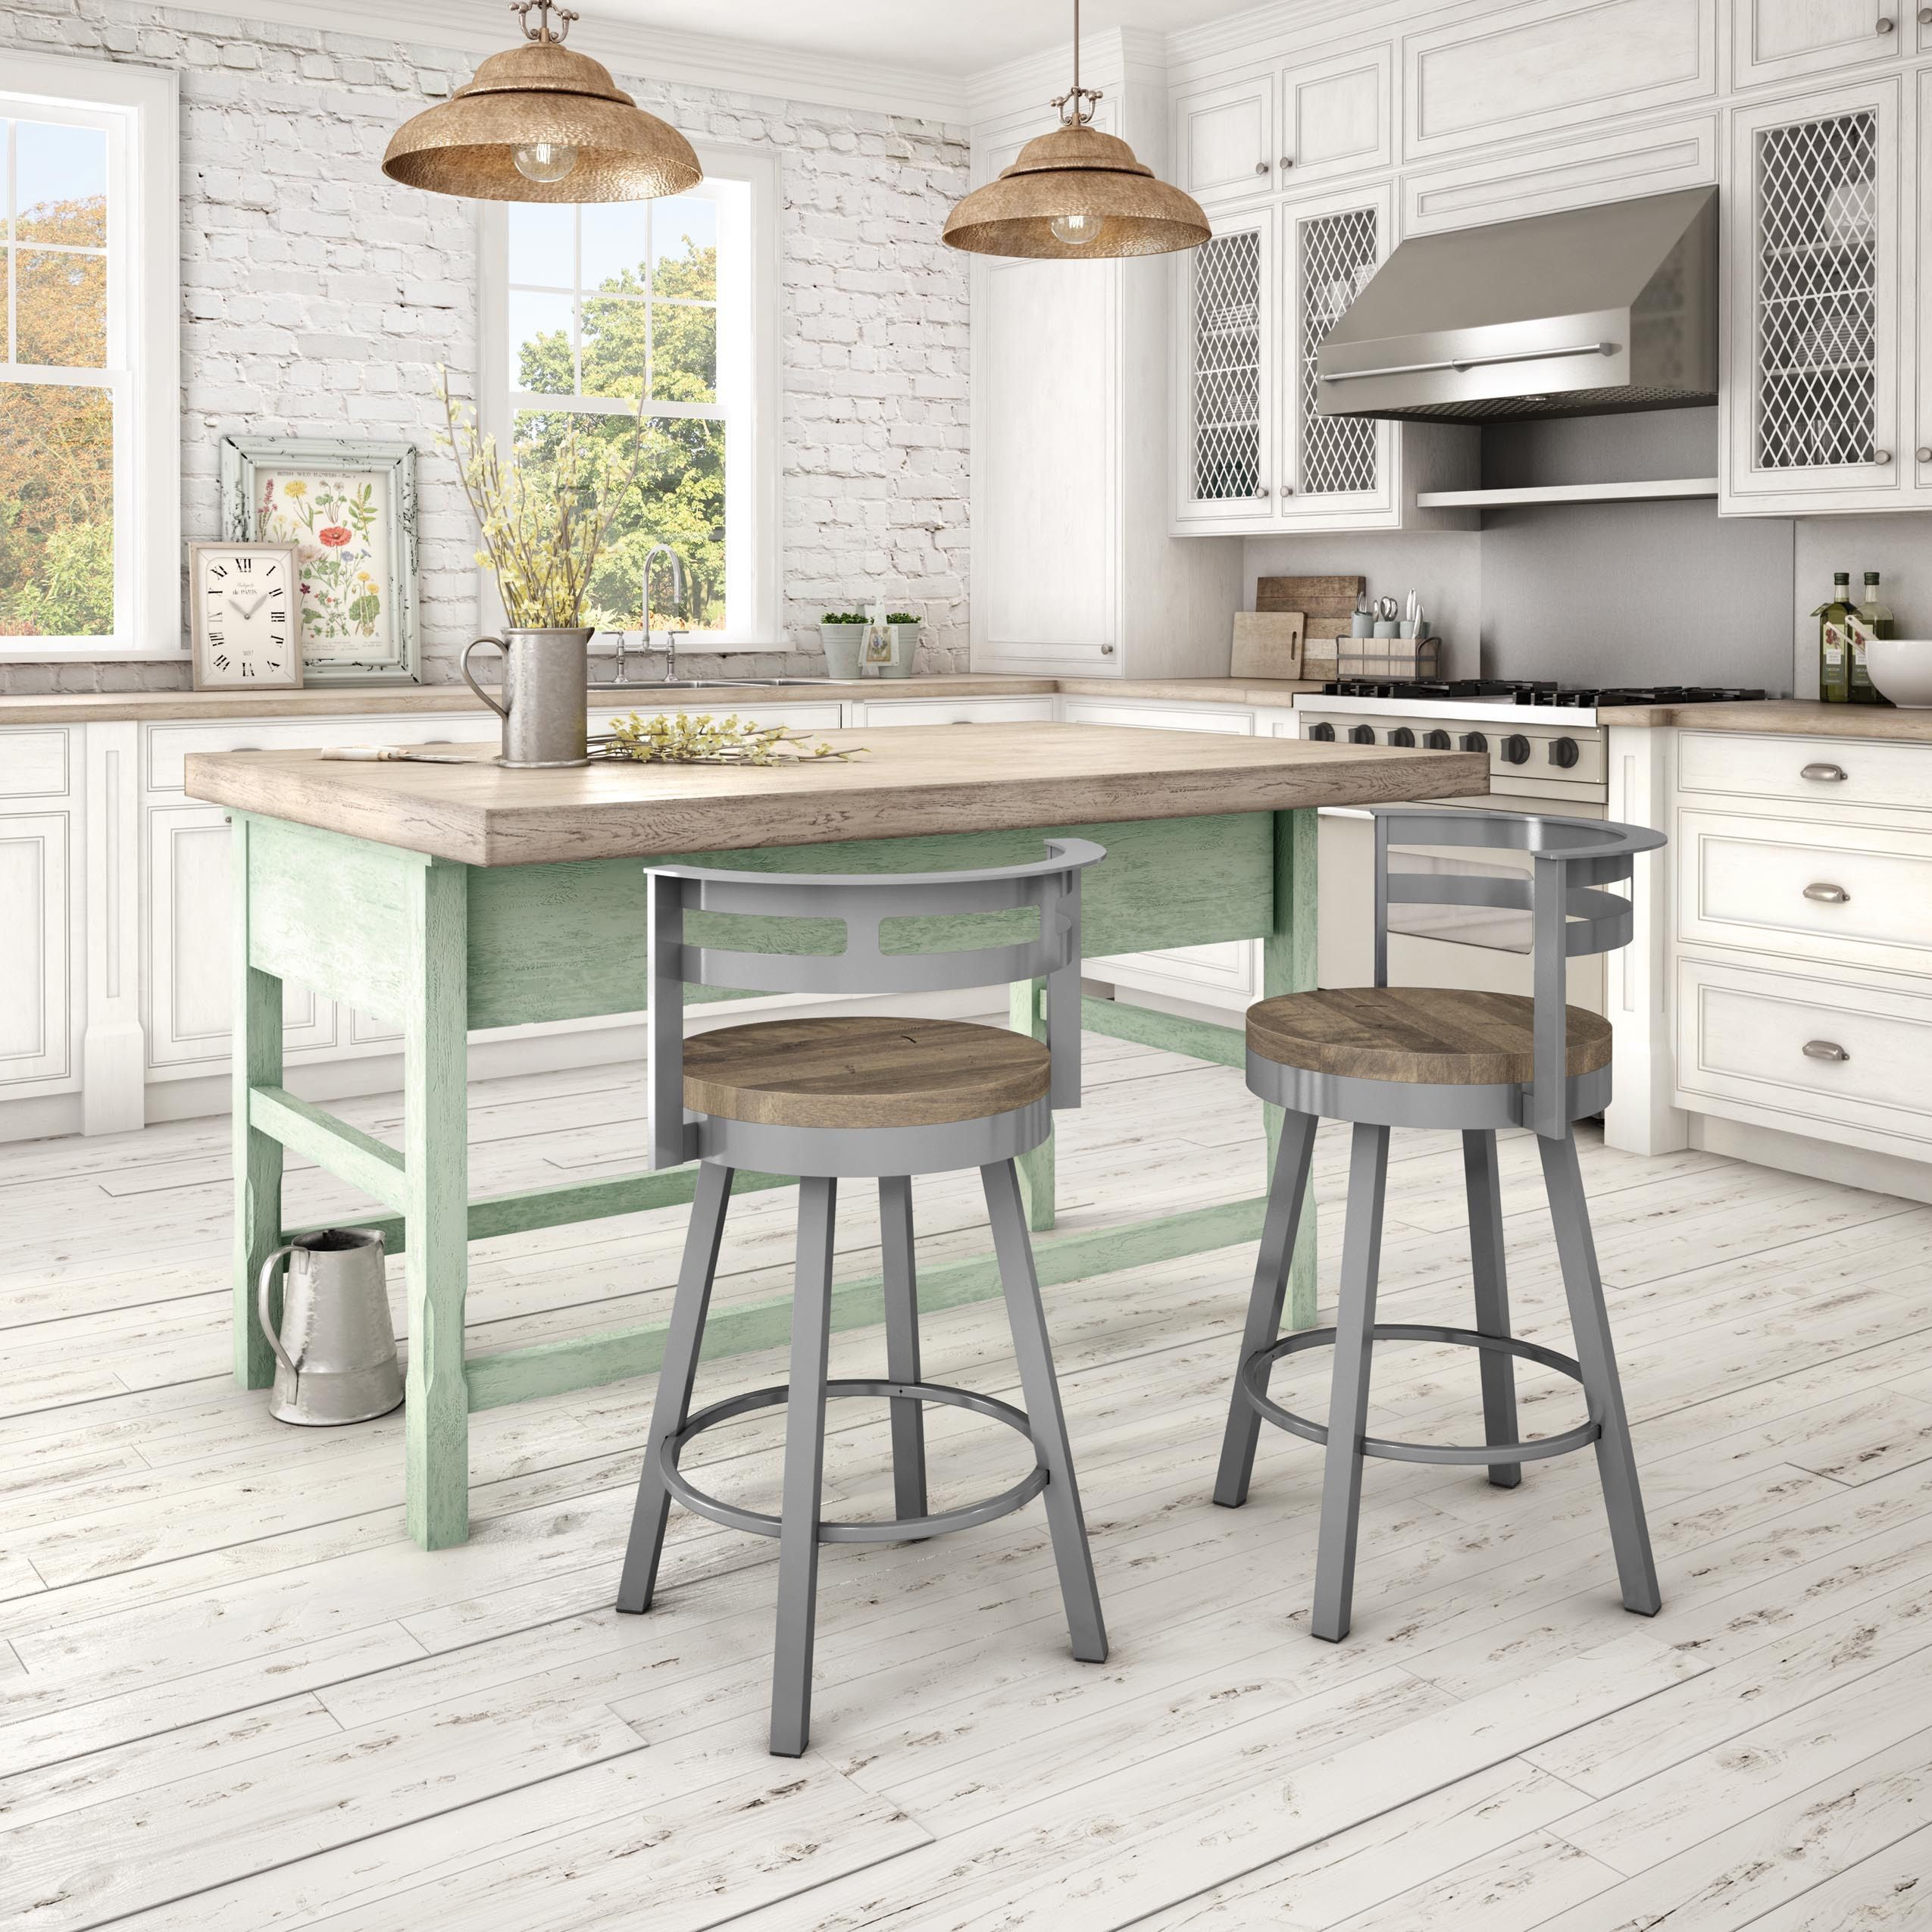 Elegant Stool for Kitchen island